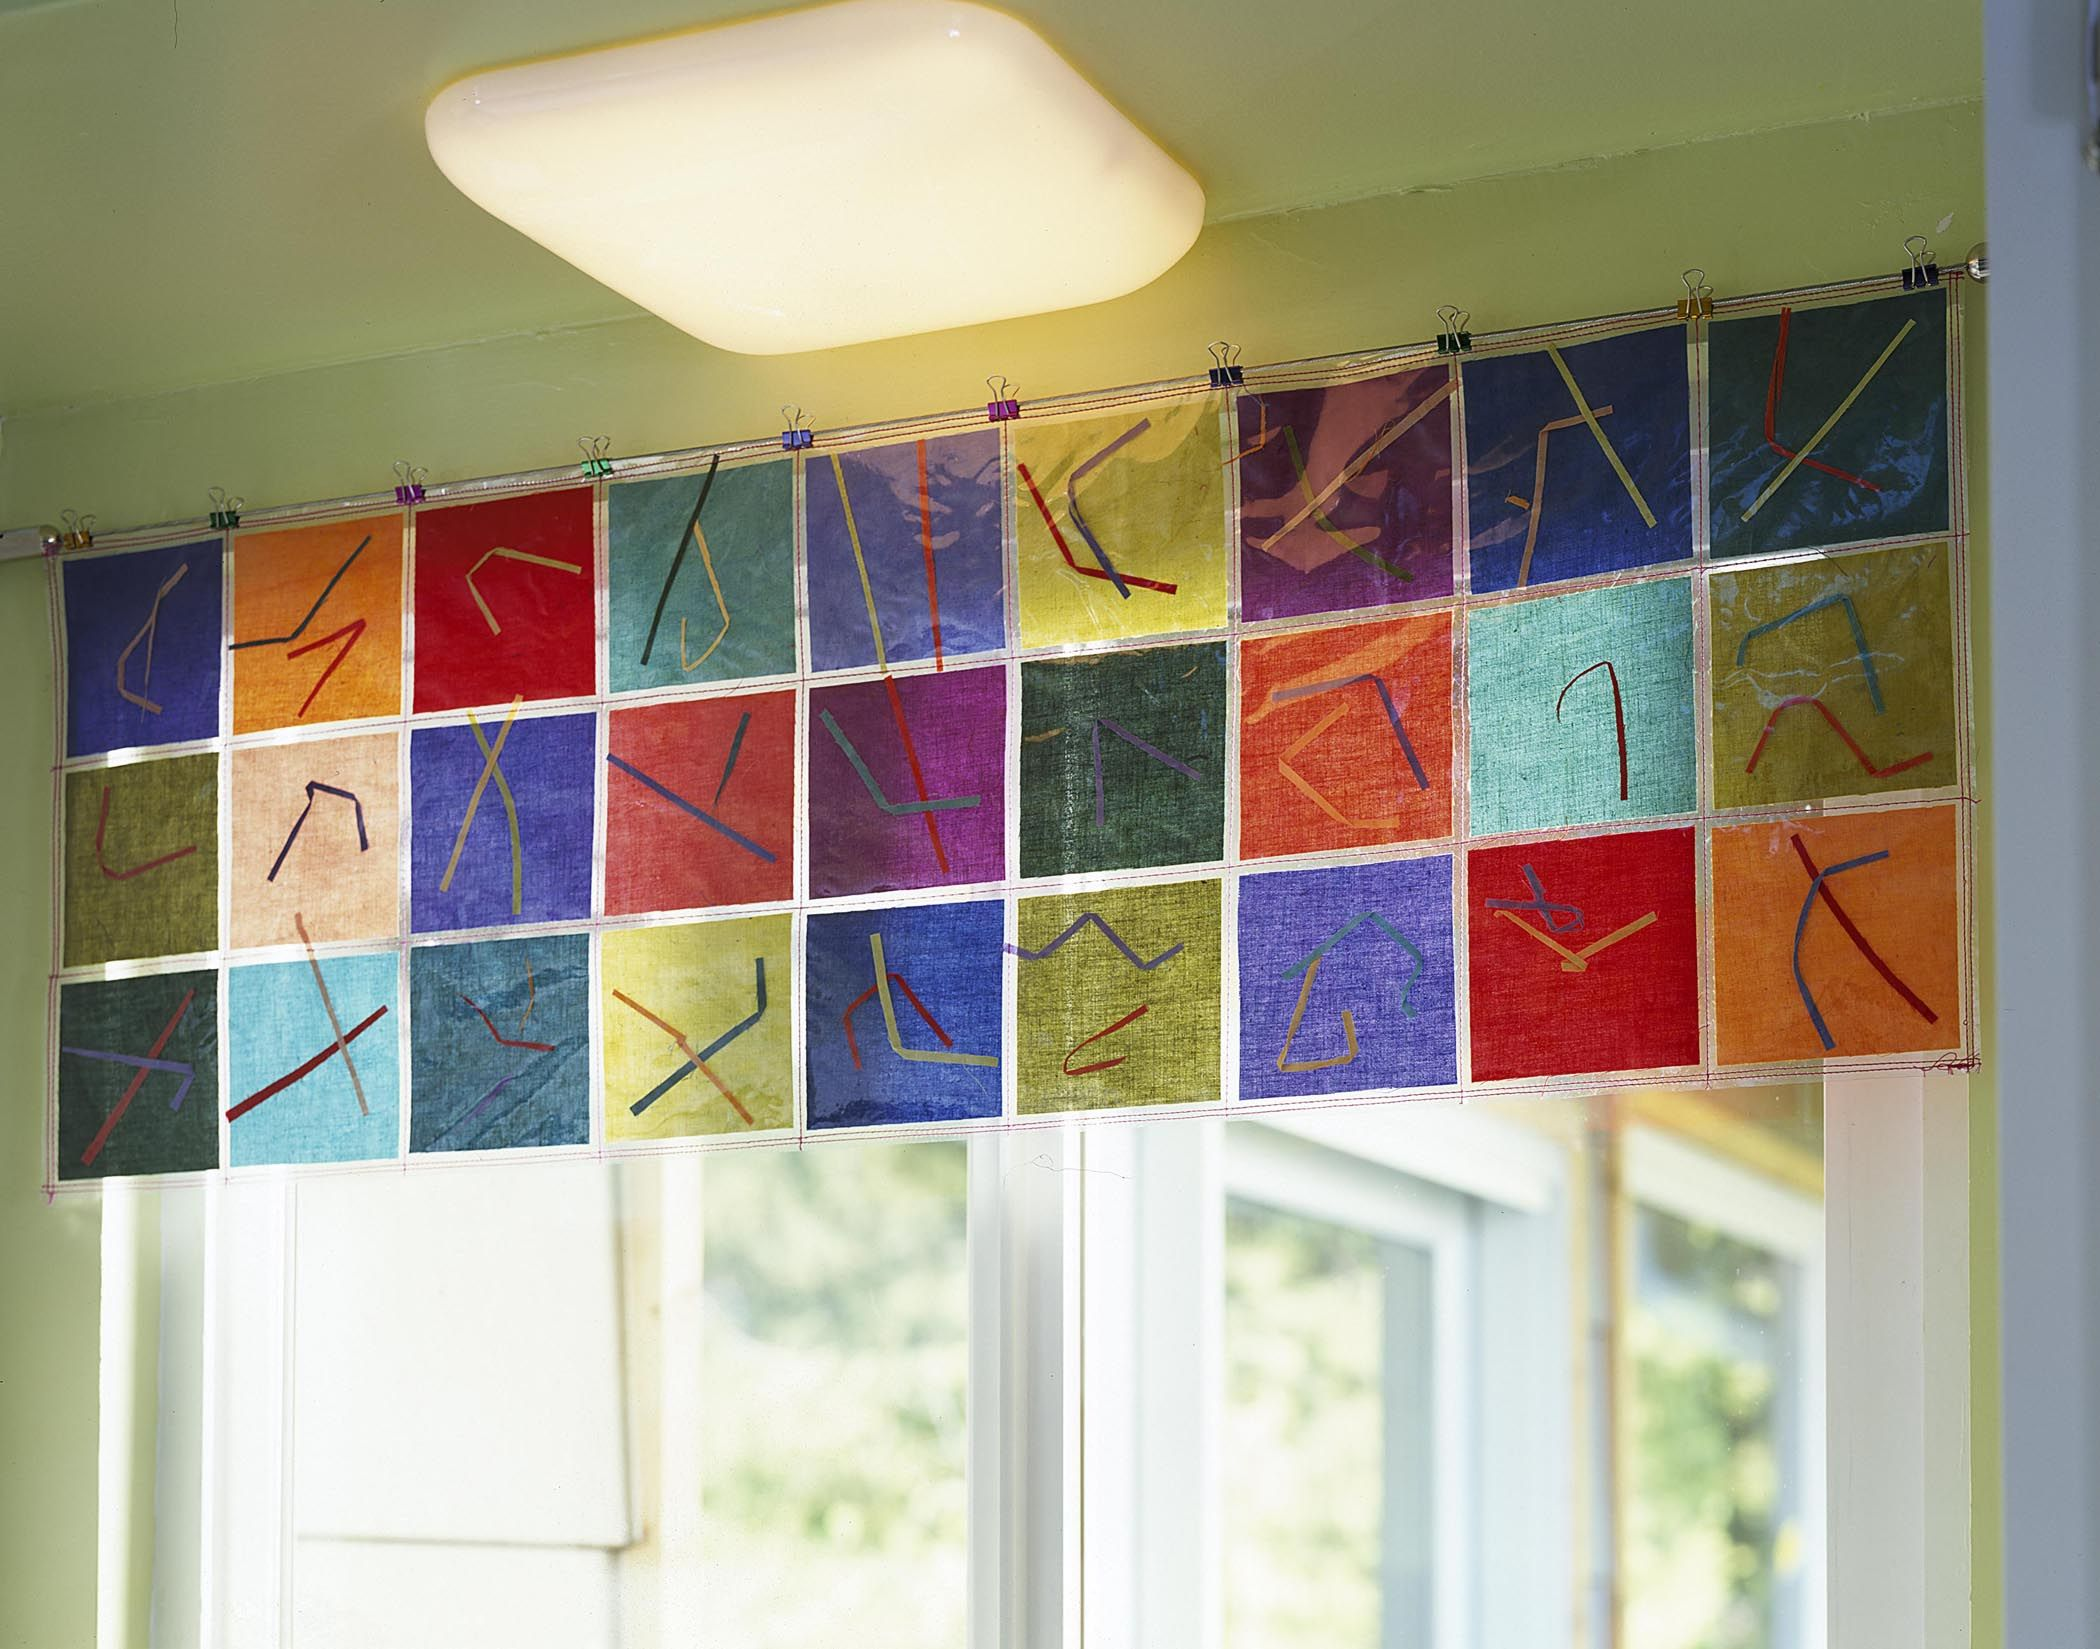 Valances for windows in classroom preschool classroom ideas pinterest valance valance - Kitchen valance patterns ...